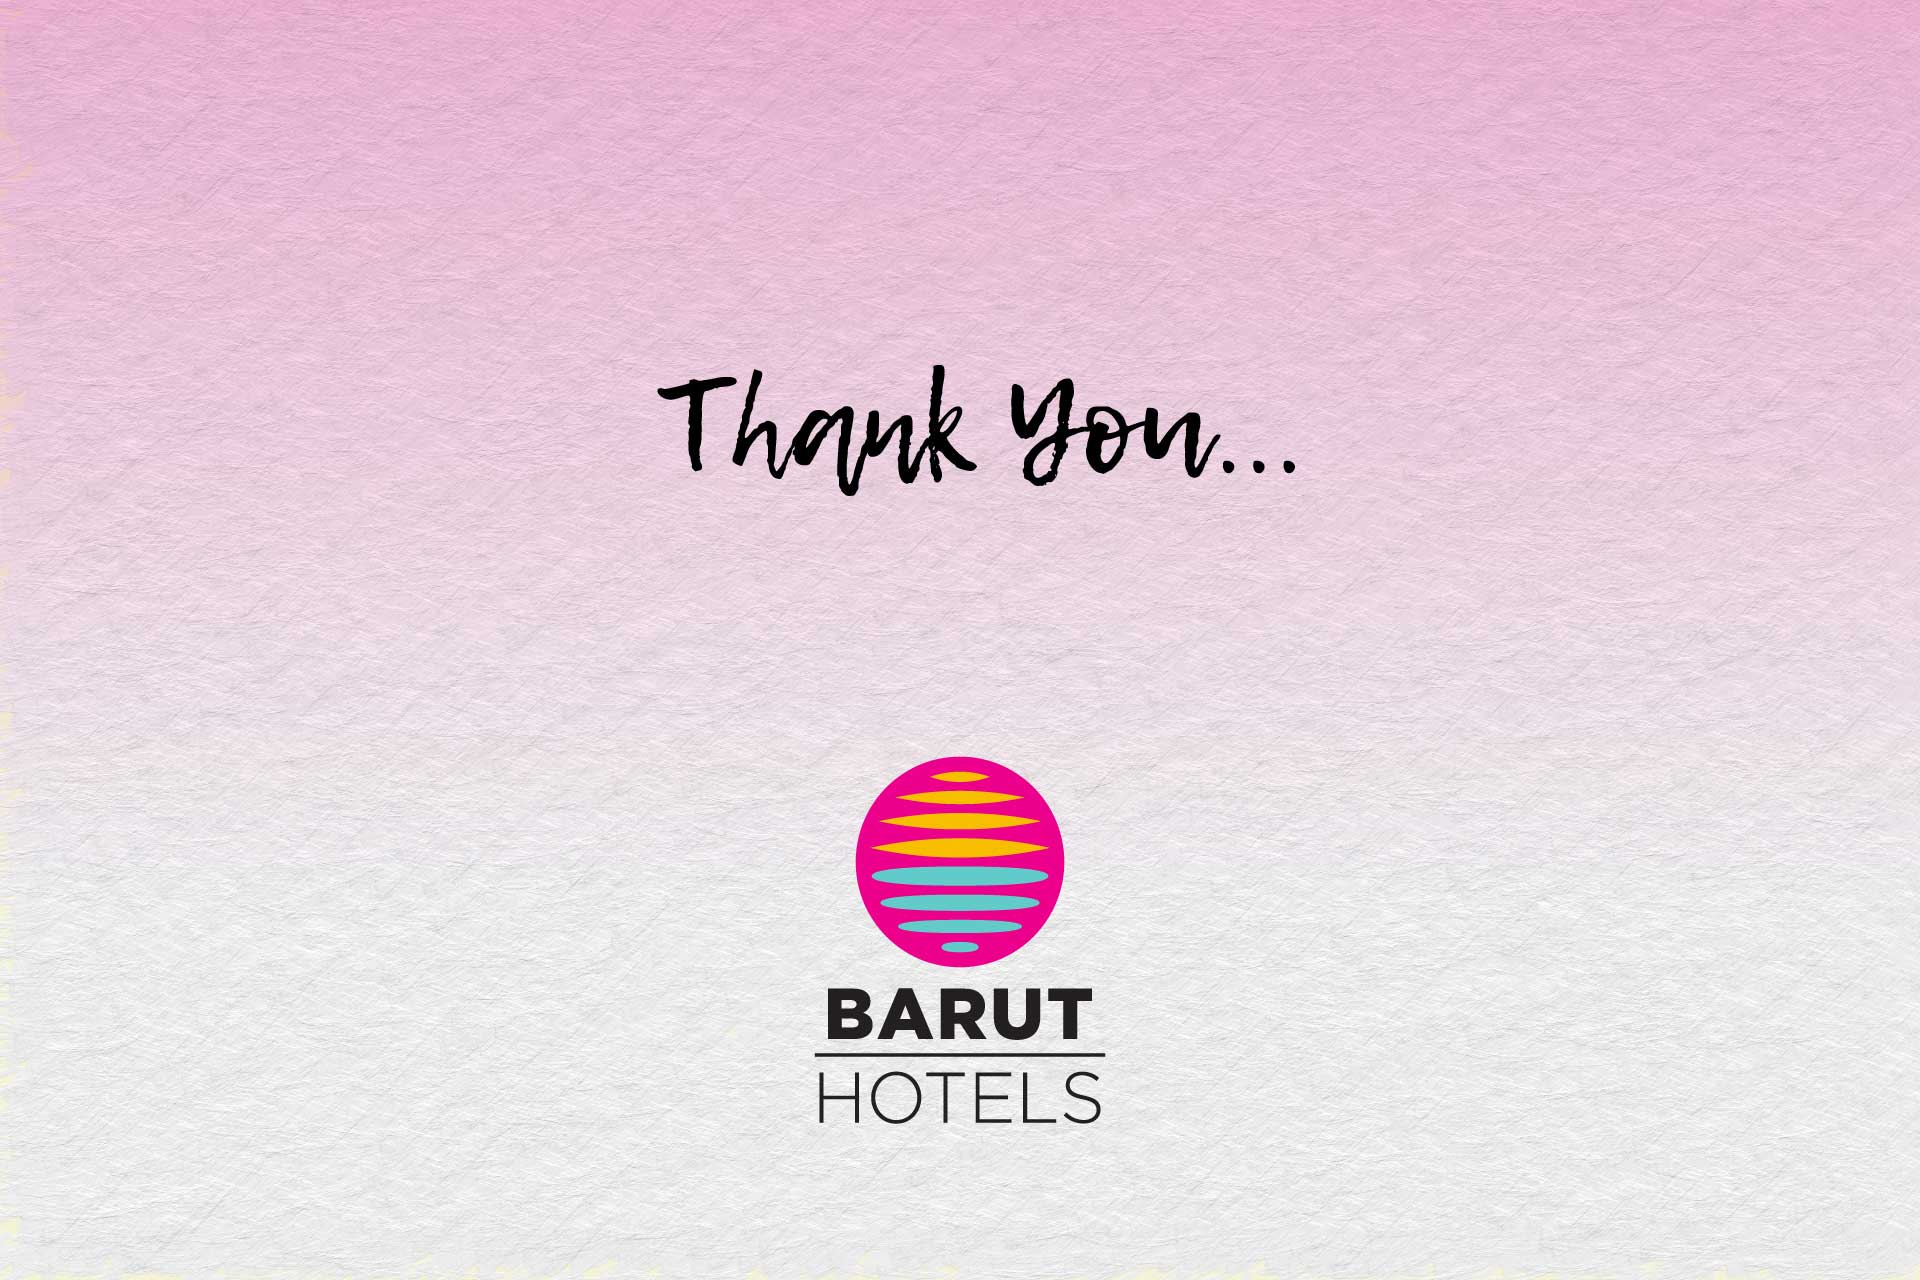 THANK YOU FOR YOUR RELIANCE ON BARUT HOTELS AND TURKISH TOURISM